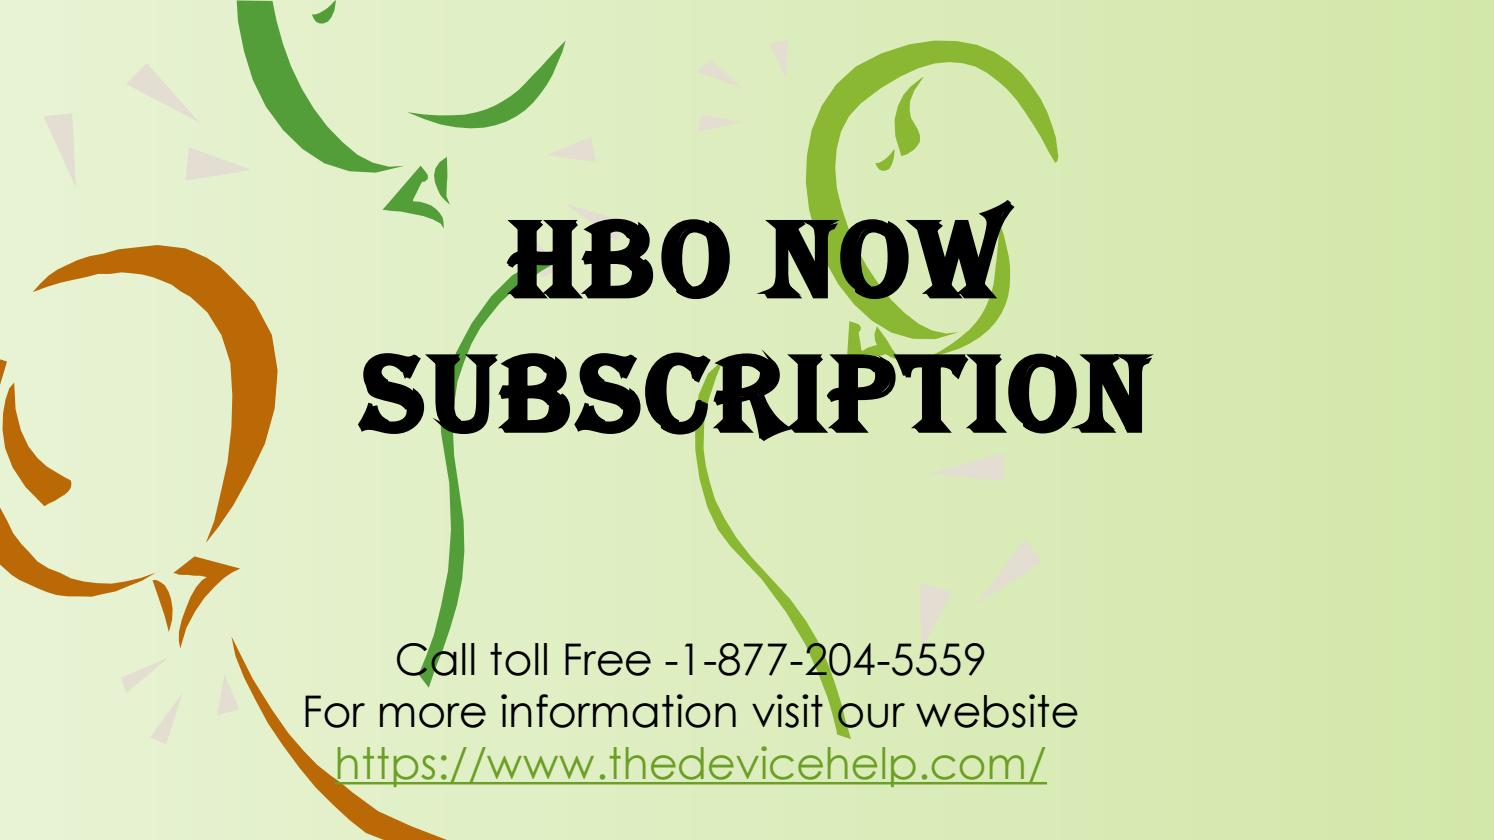 hbo now free account